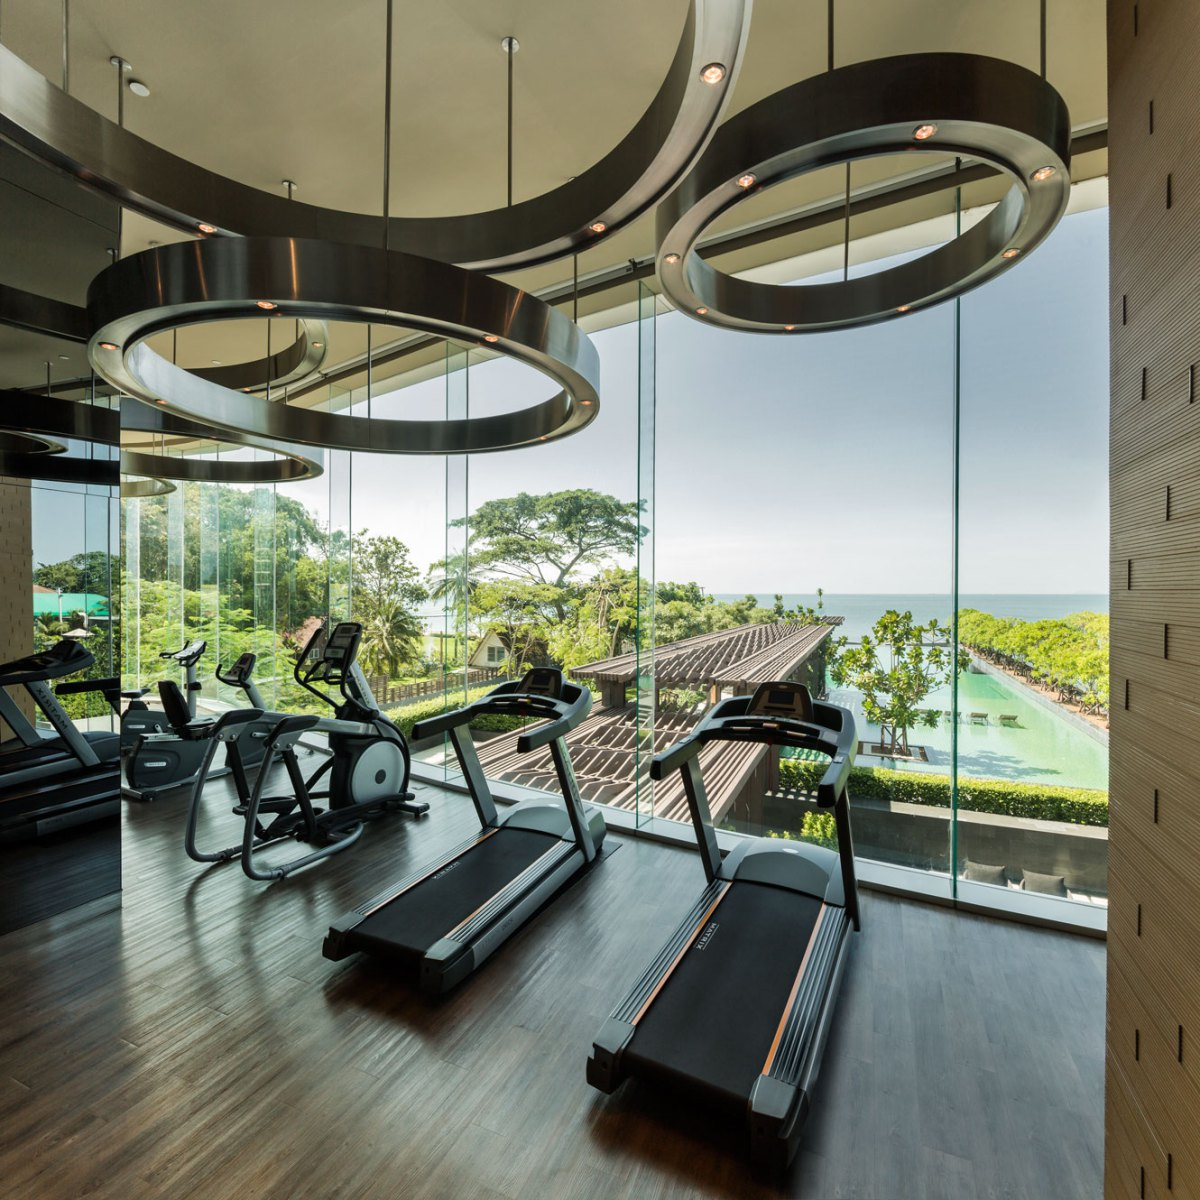 Gym Interior Fitness Design And: Luxury Beachfront Condo Development In Pattaya